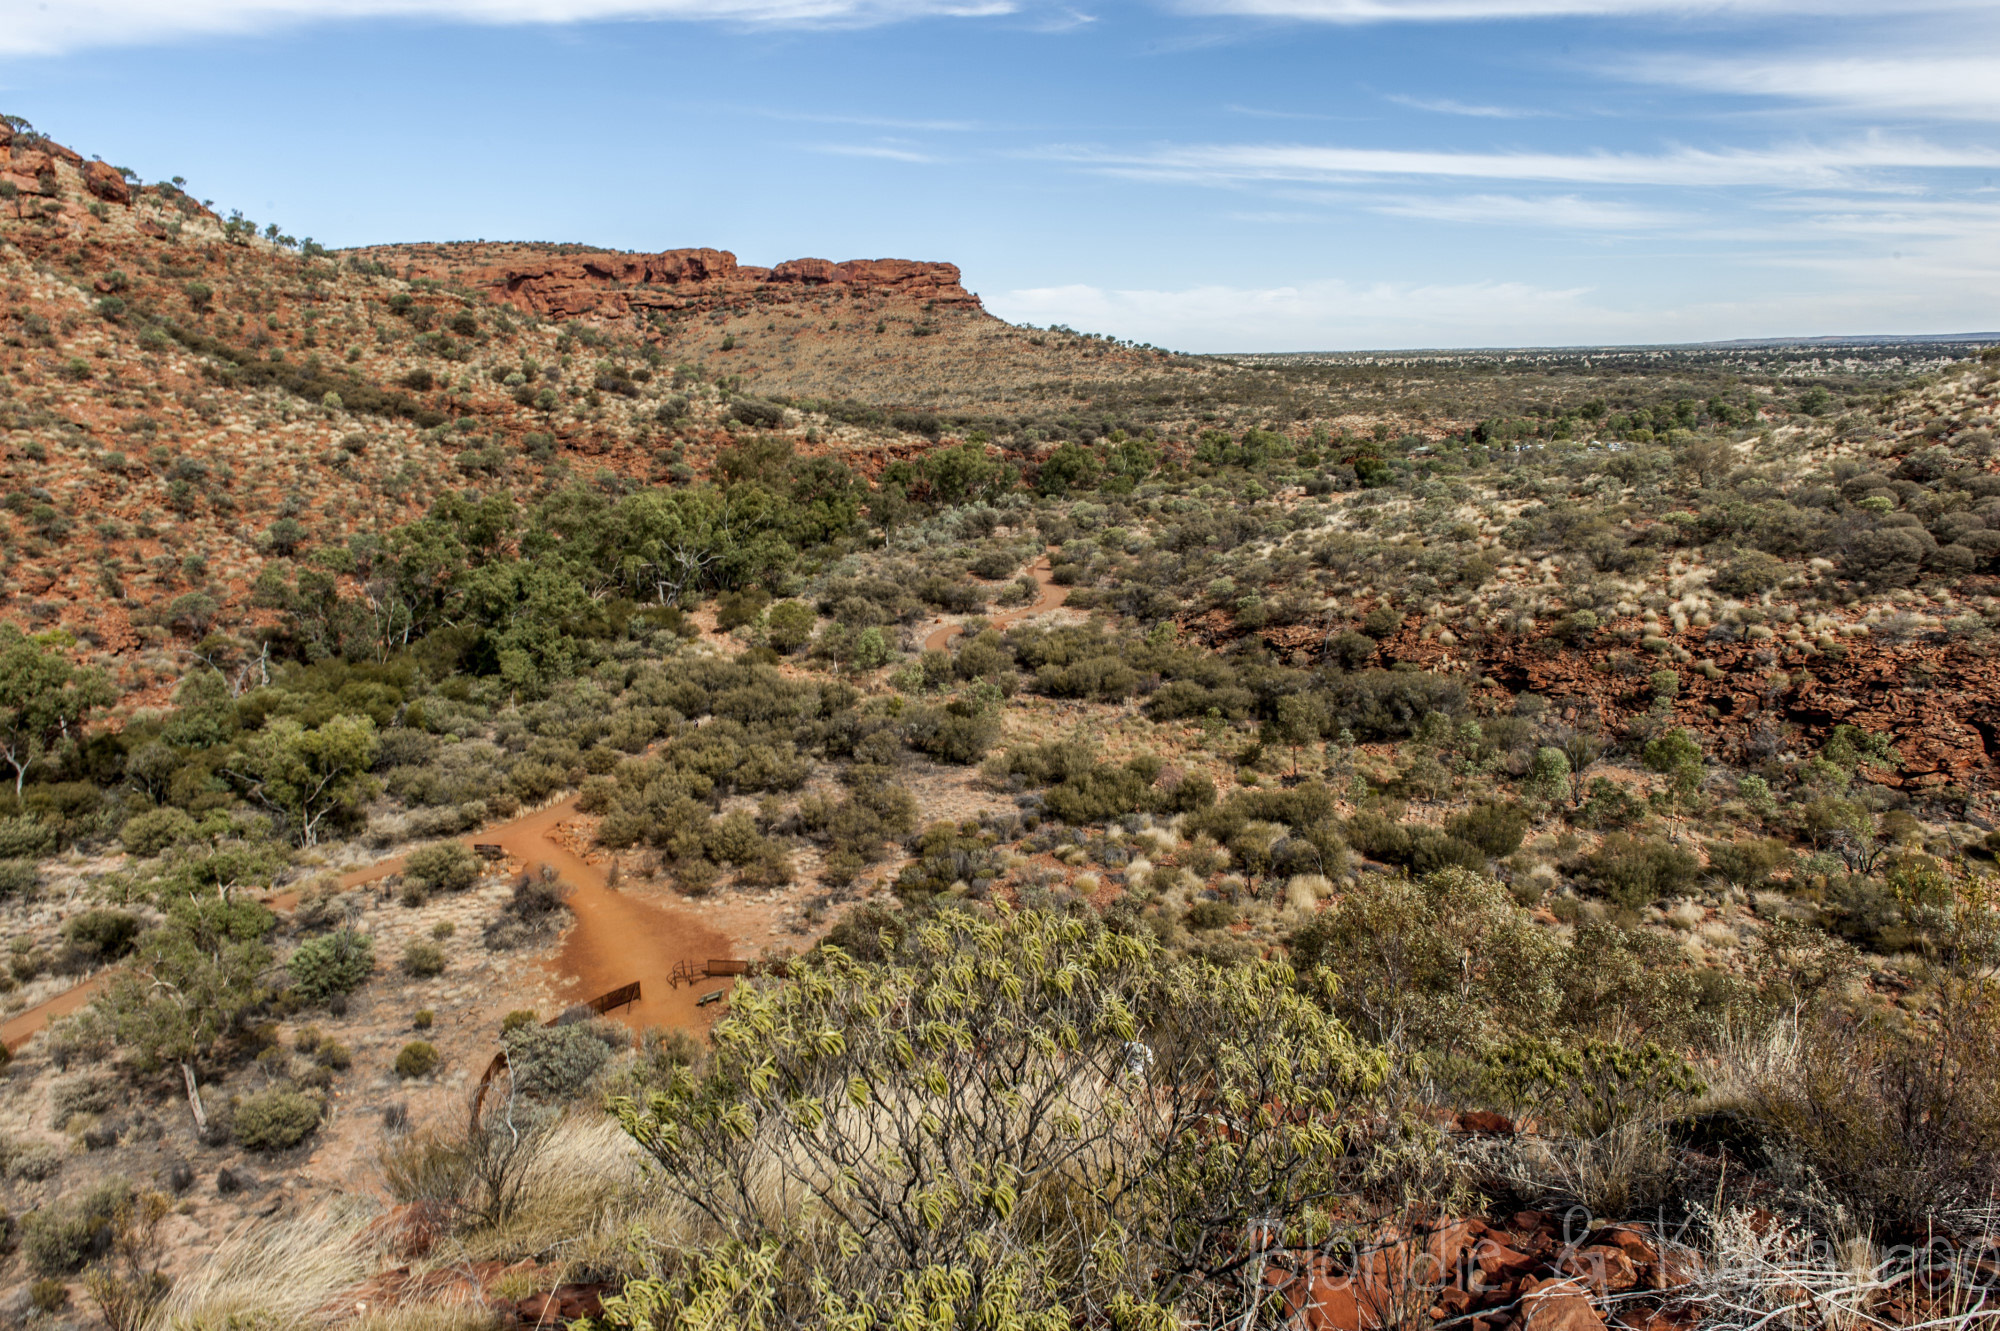 Kings Canyon - Uluru and Aussie outback in 5 days/Kings Canyon – Przygody na pustyni część druga